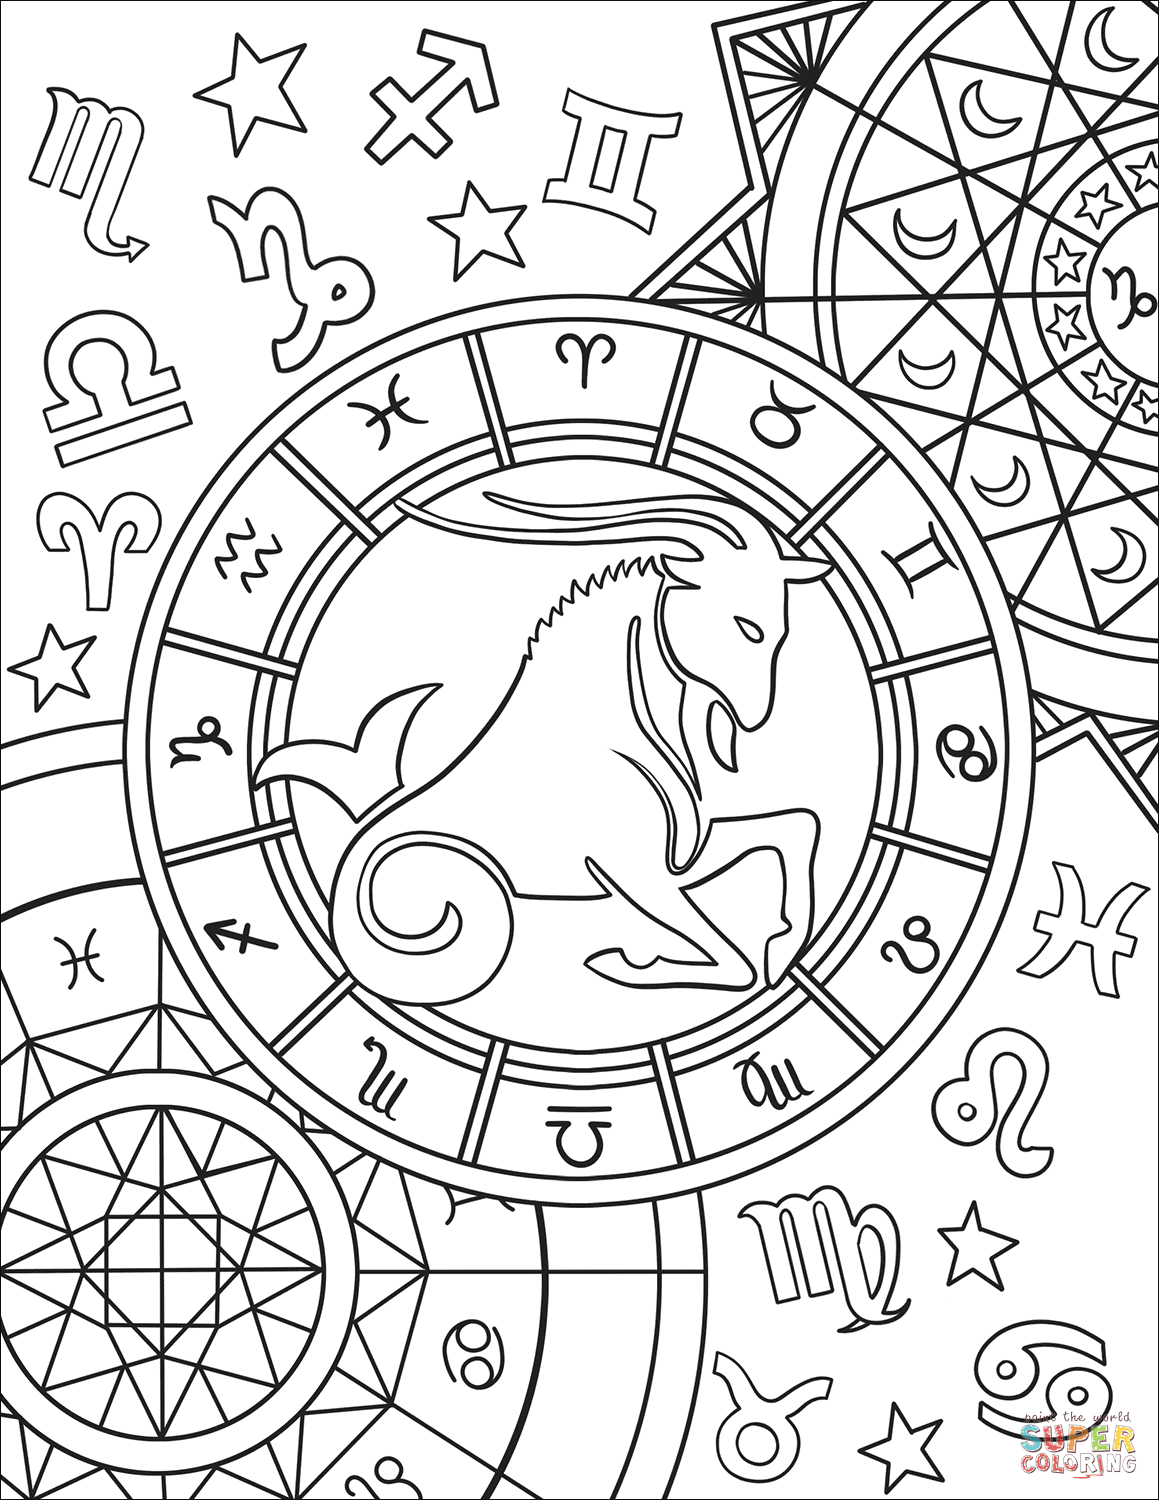 zodiac signs coloring pages zodiac signs coloring pages to download sketch coloring page pages coloring signs zodiac